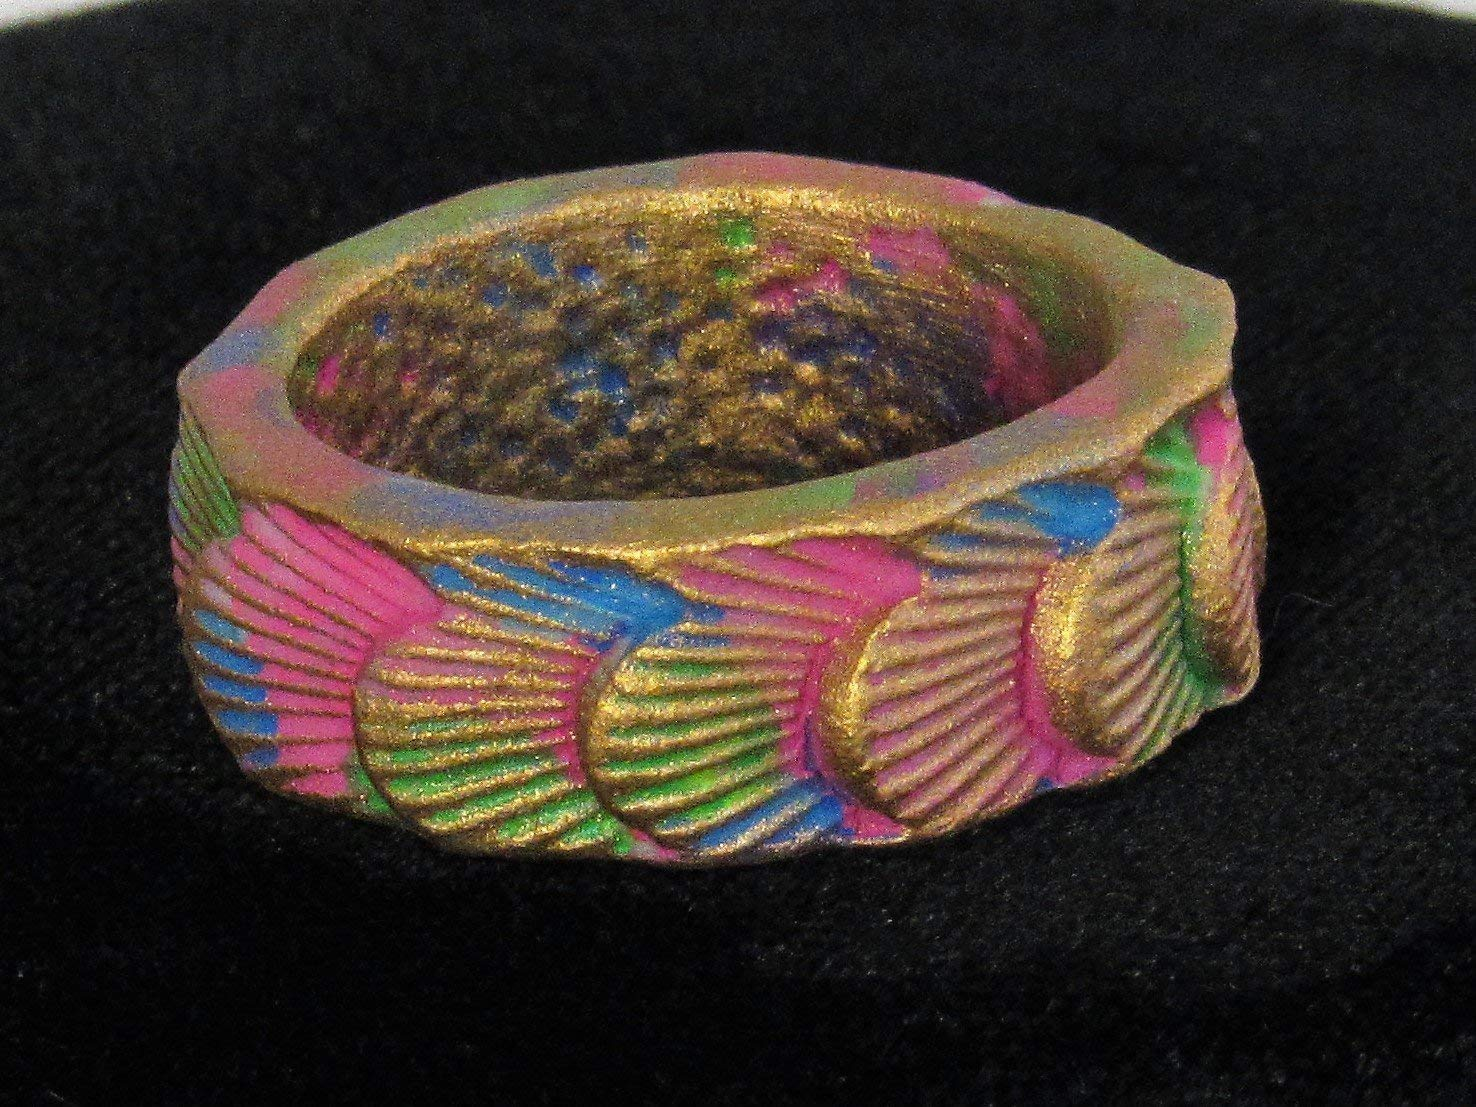 "0.38"" Wide Band Statement Ring Size 7 3/4 Goldtone Blue Green Pink Multi Color Boho Hippie Seashell Design Handmade Porcelain Clay Textured Patina Dread Braid Bead Hair Jewelry"